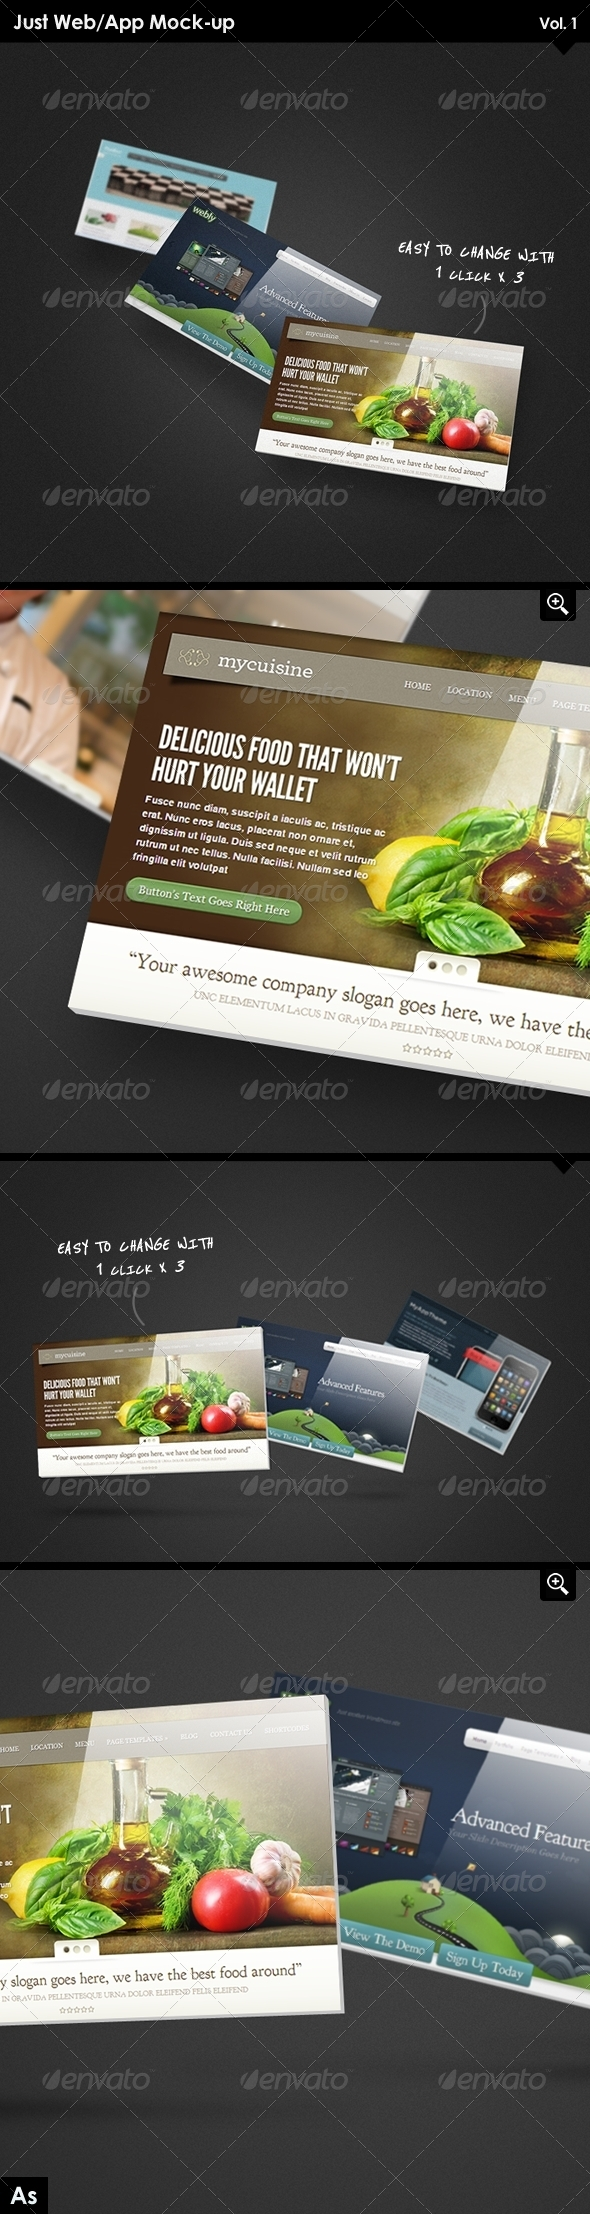 Just Web/App Mockup - Website Displays